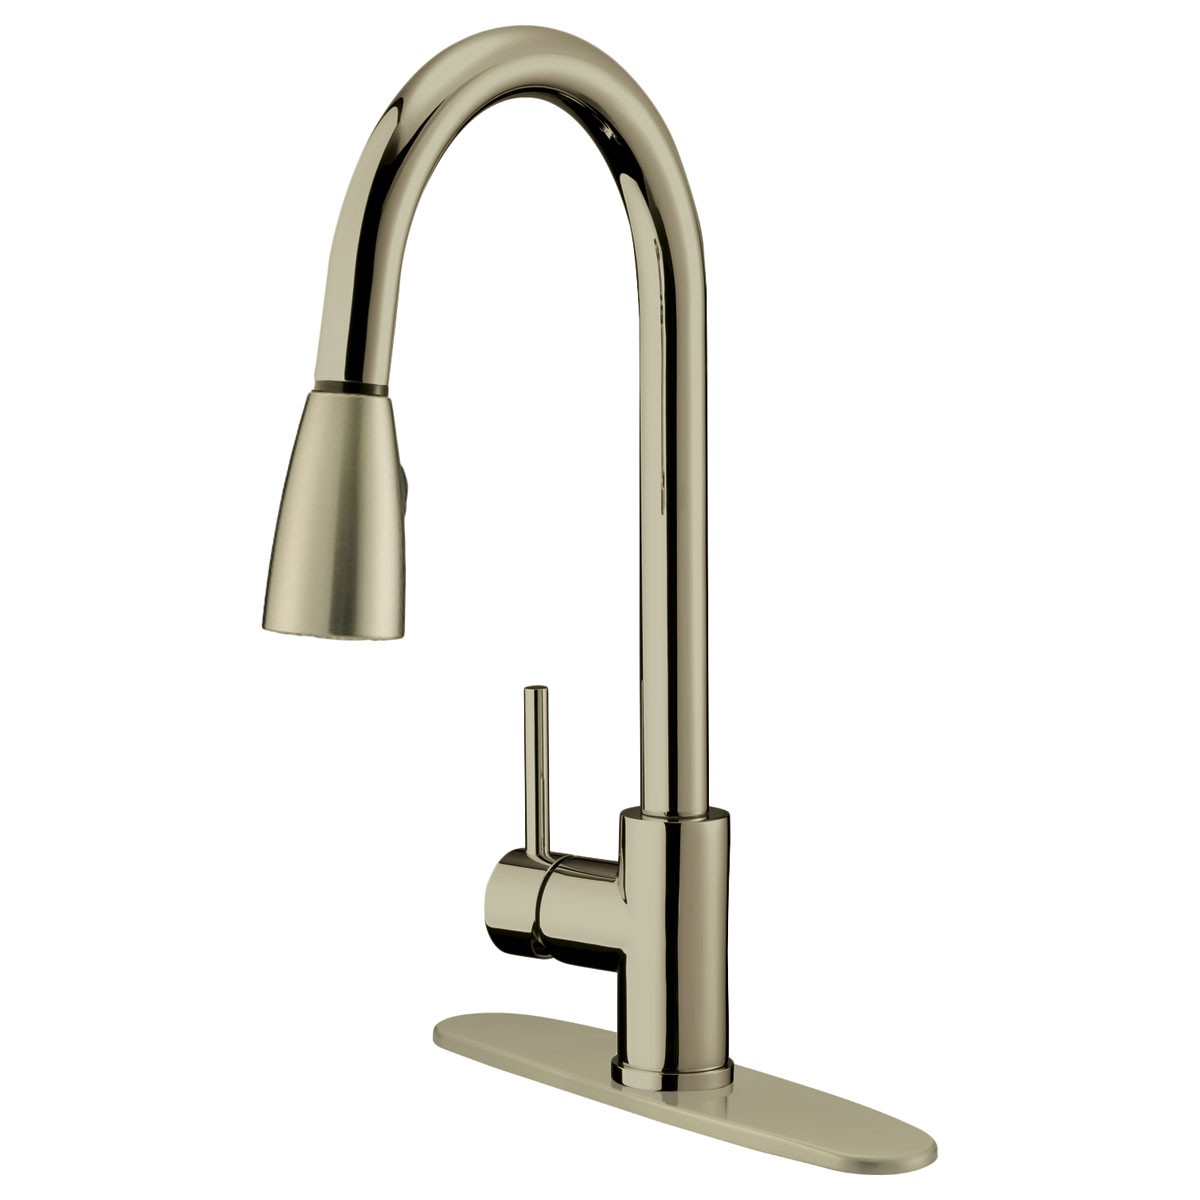 LK4B PULL OUT KITCHEN FAUCET, BRUSHED NICKEL FINISH - Cabinet ERA ...